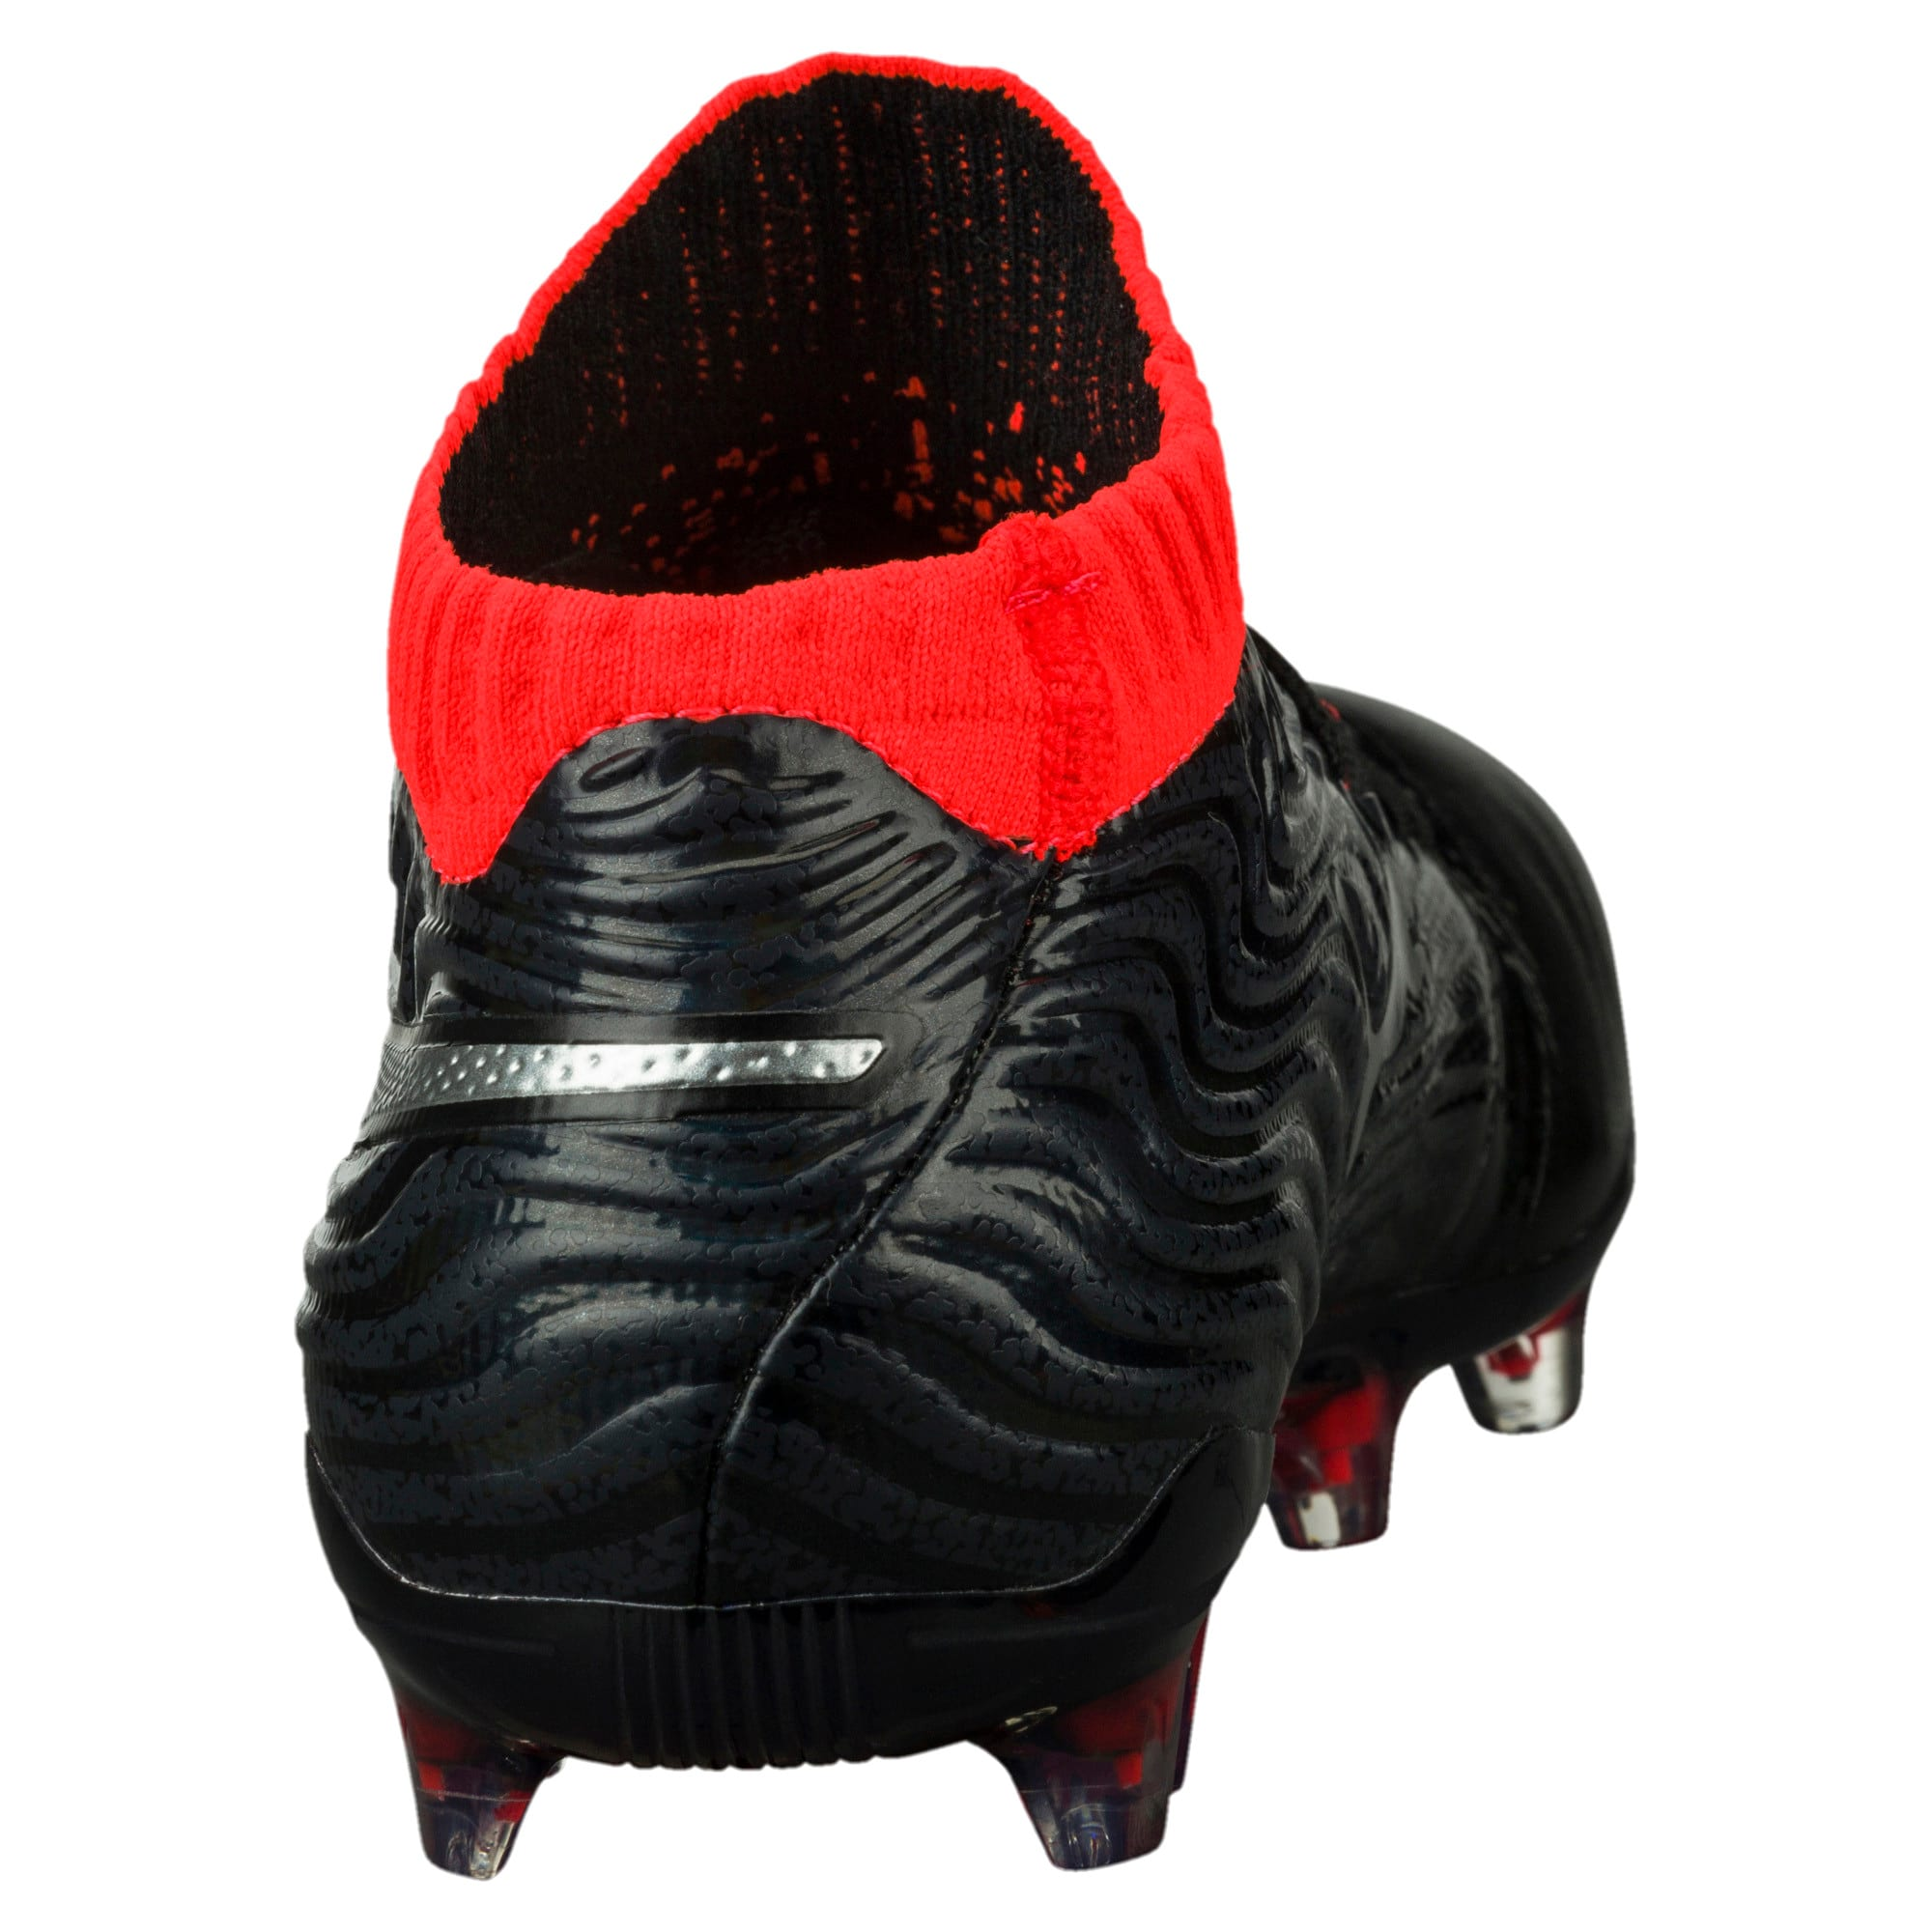 Thumbnail 4 of ONE 18.1 FG Soccer Cleats JR, Black-Silver-Red, medium